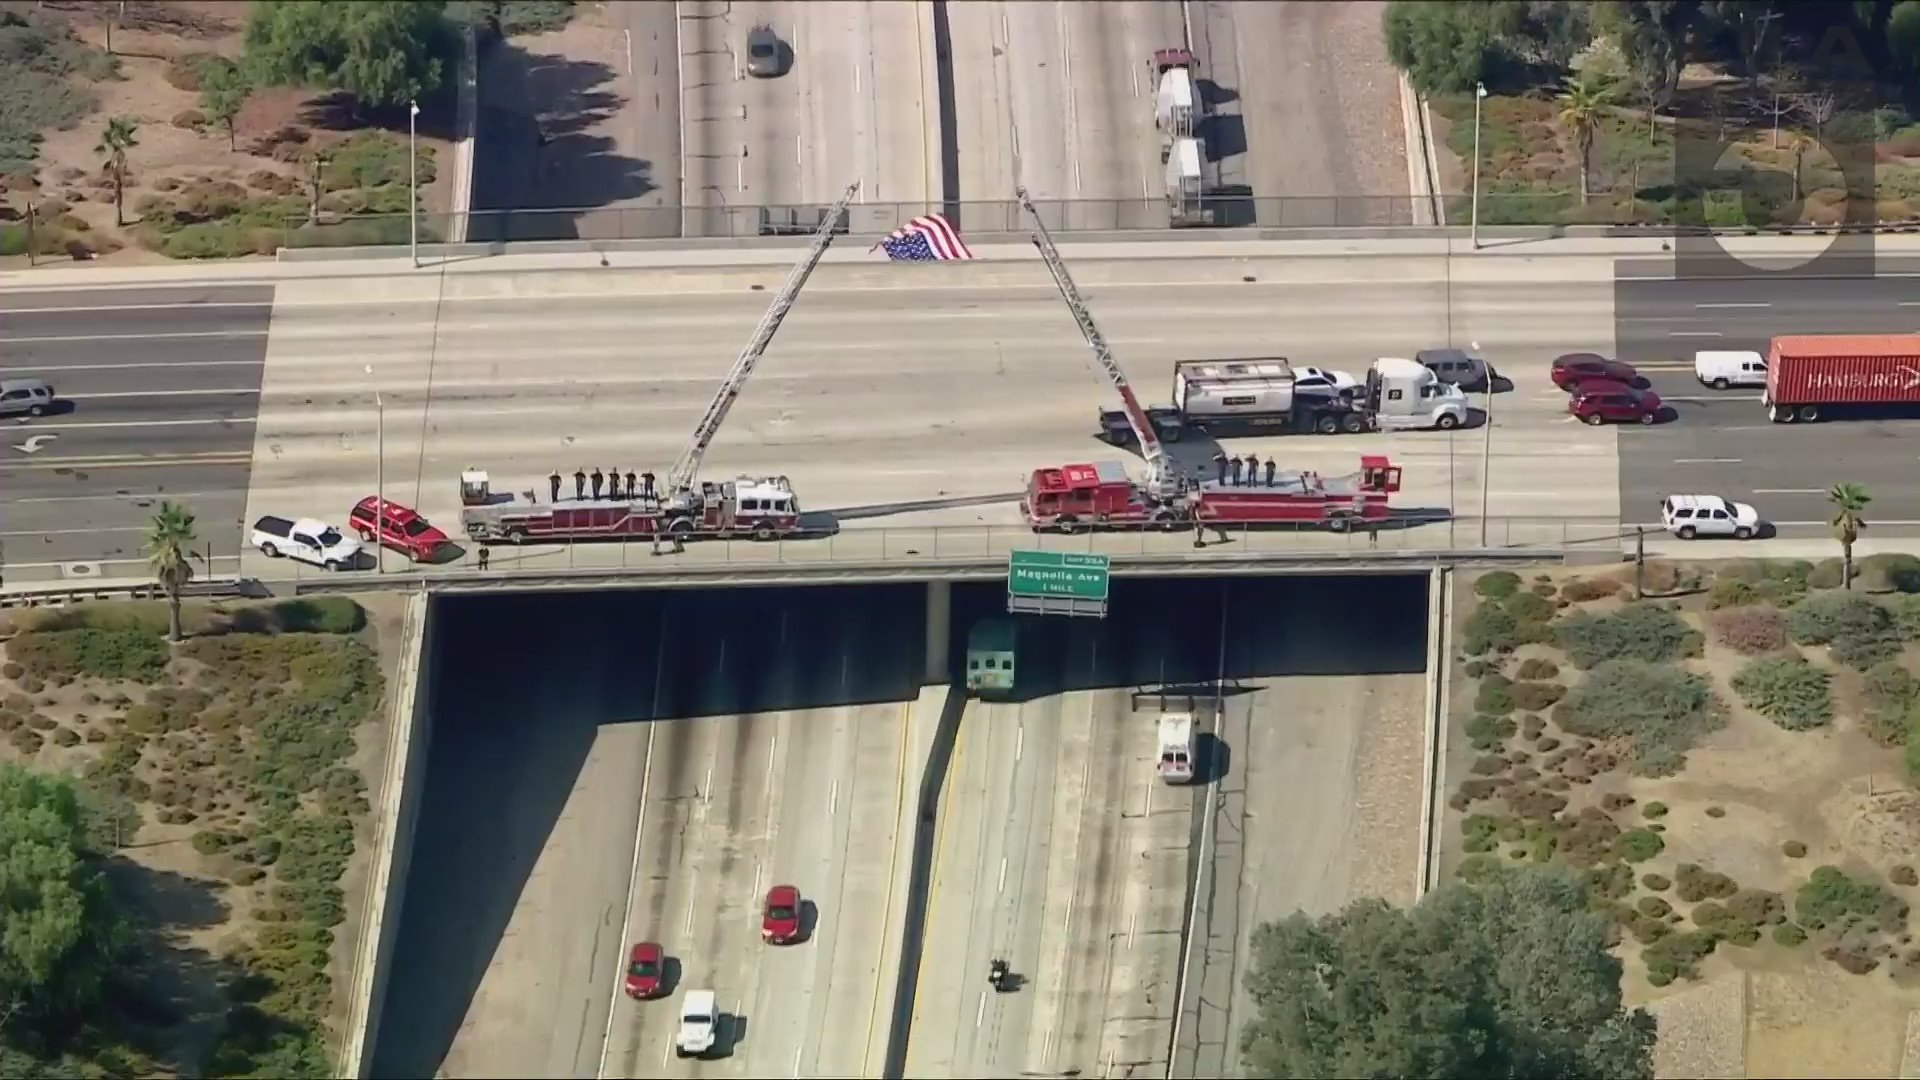 he always had my back firefighter who died battling el dorado fire honored by colleagues during procession ktla firefighter who died battling el dorado